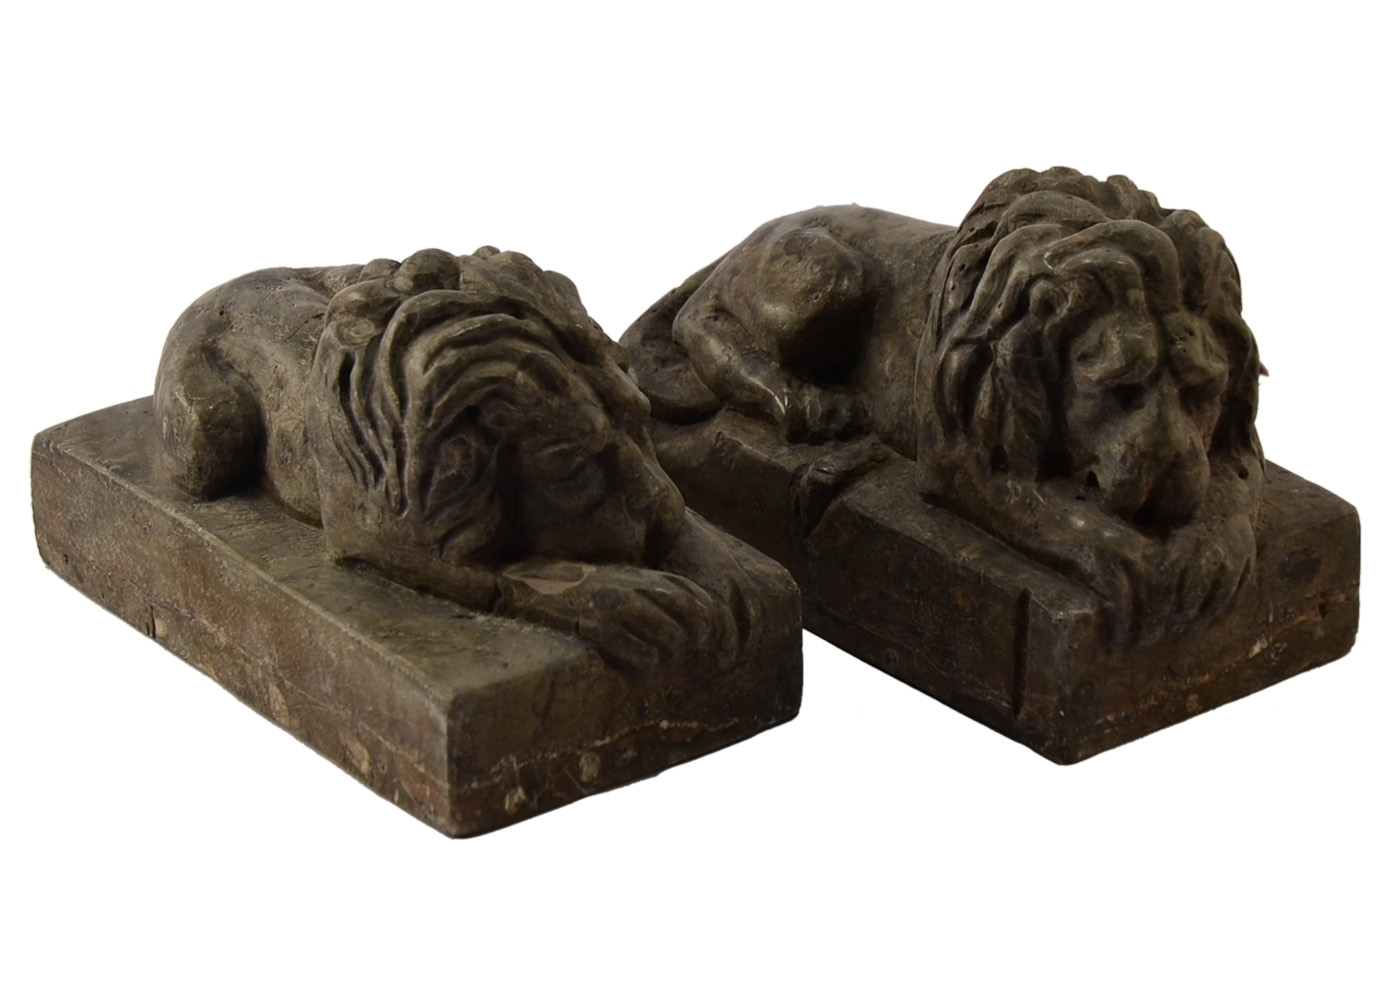 Buy Two Lions Paperweight Sculpture Table 17457760   Italy2Us.com